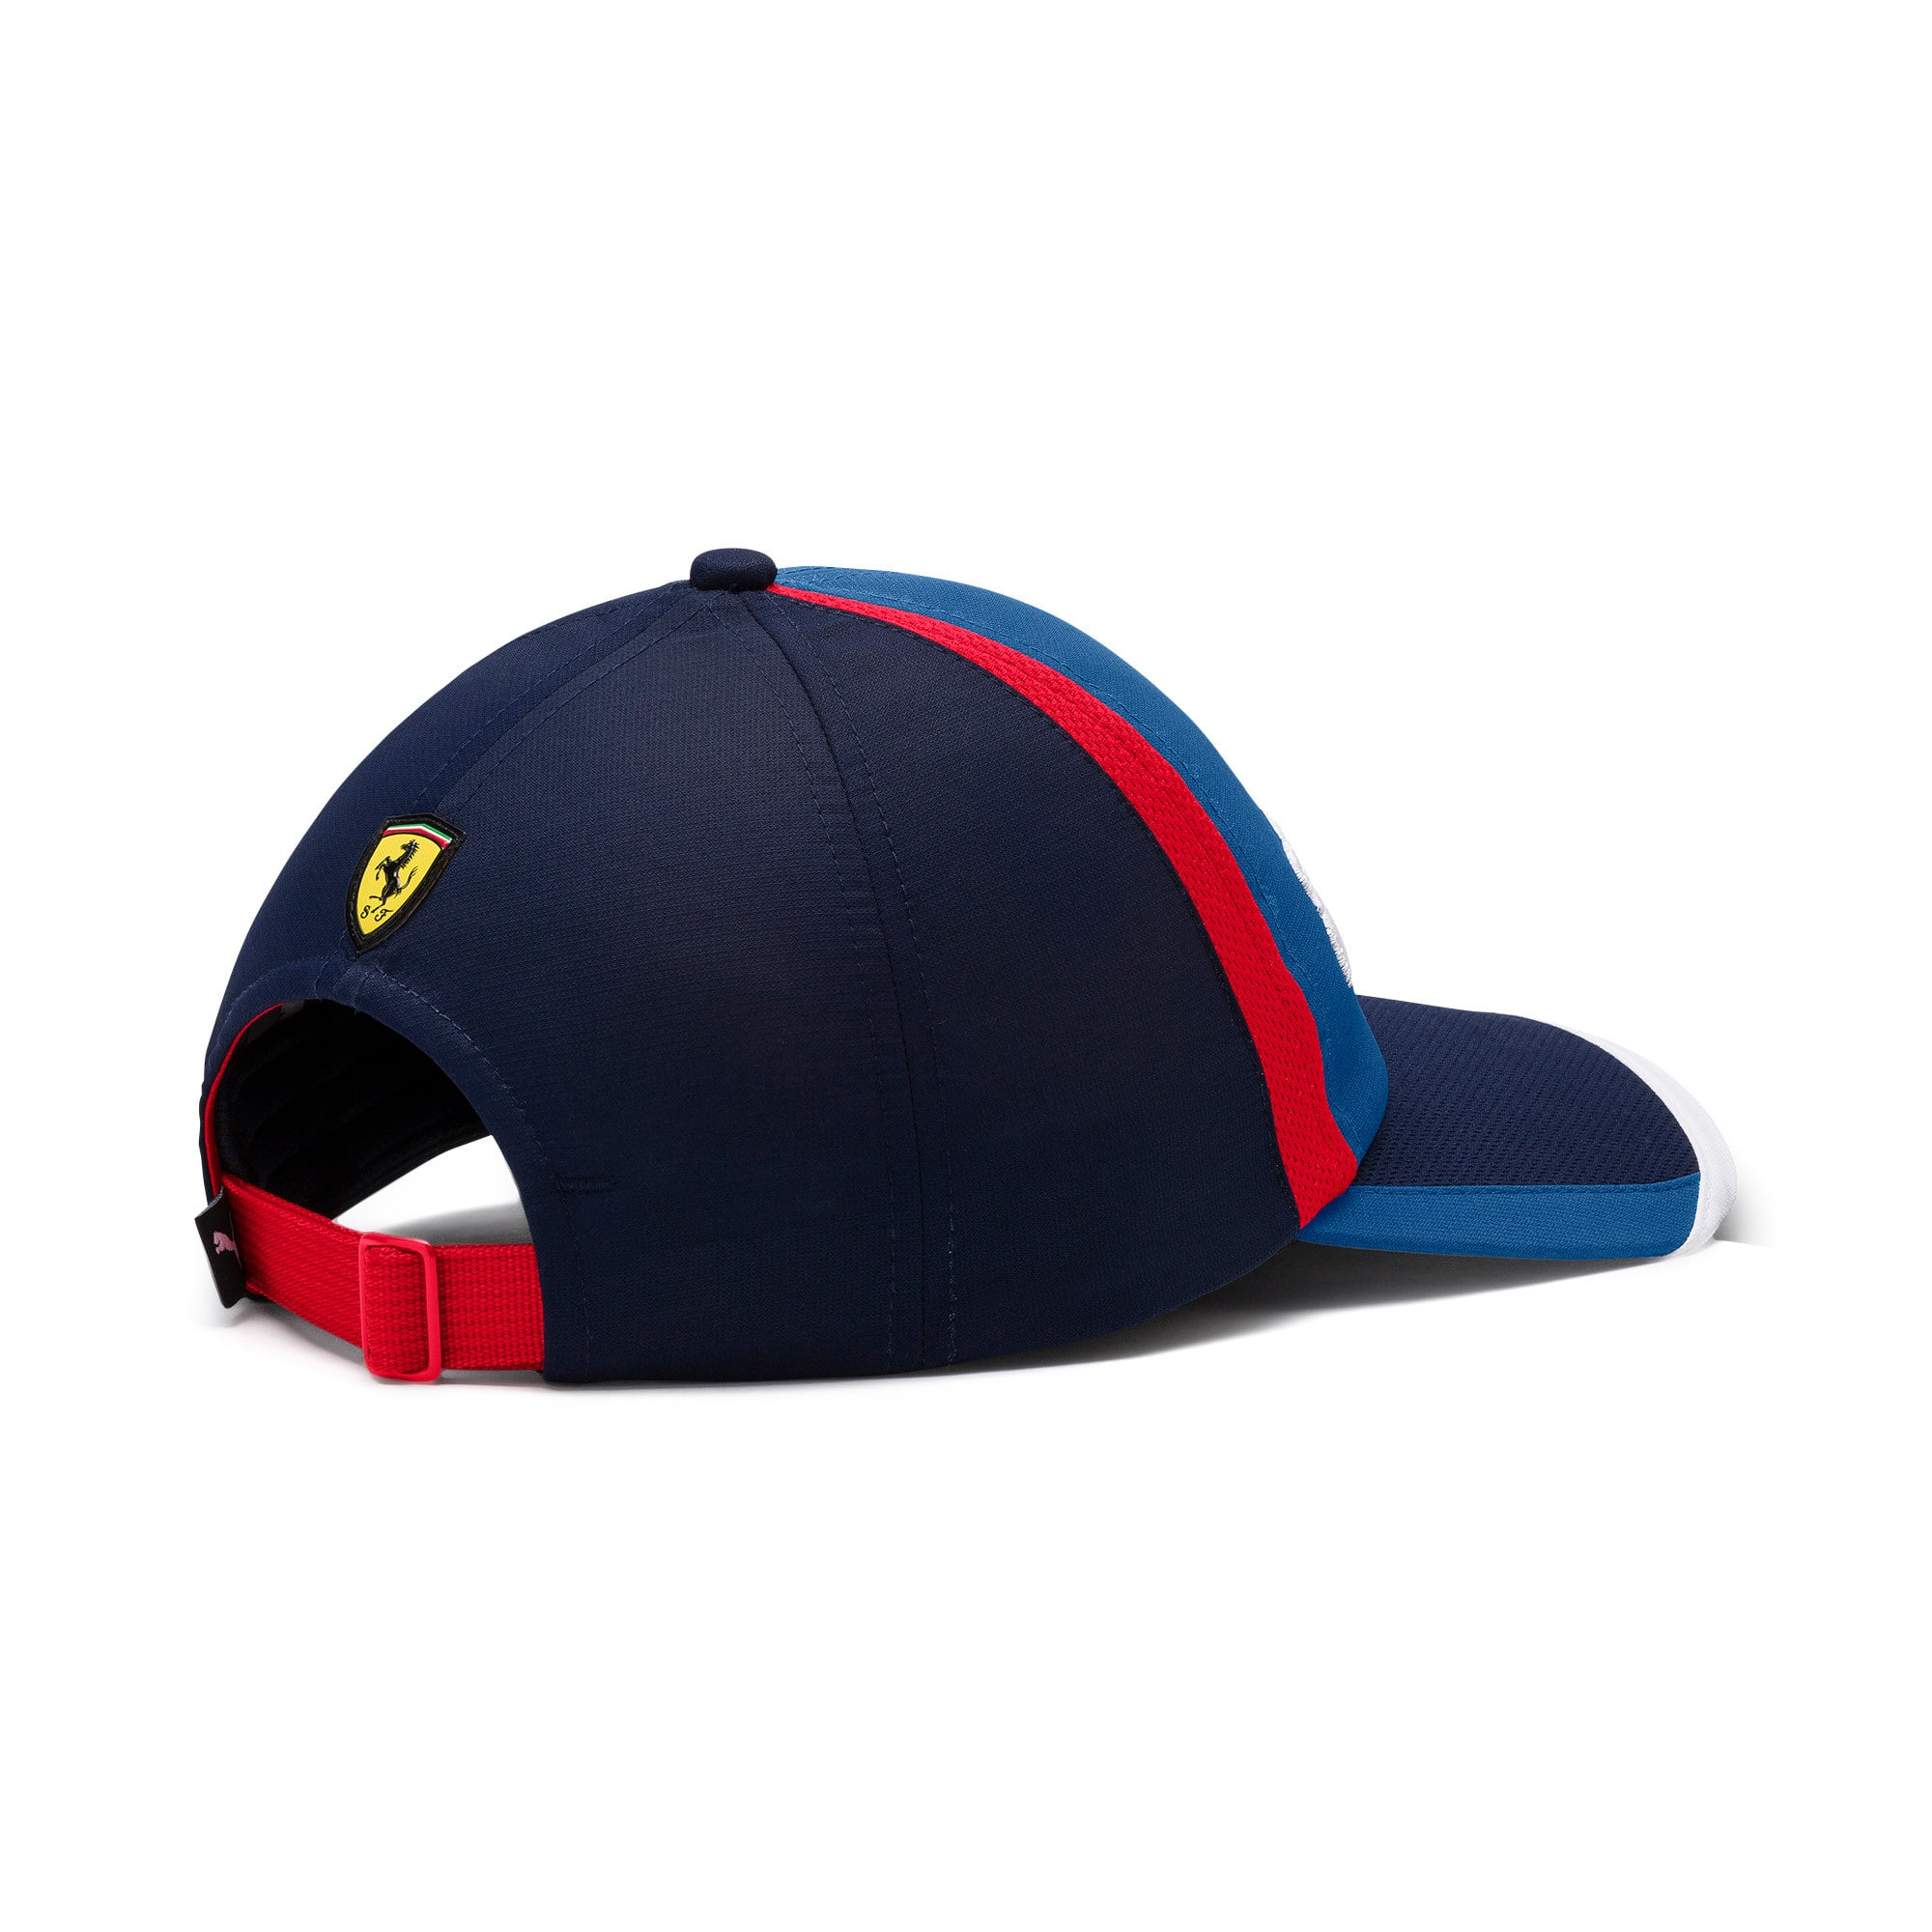 Thumbnail 3 of Ferrari Fanwear Cap, Galaxy Blue-Rosso Corsa, medium